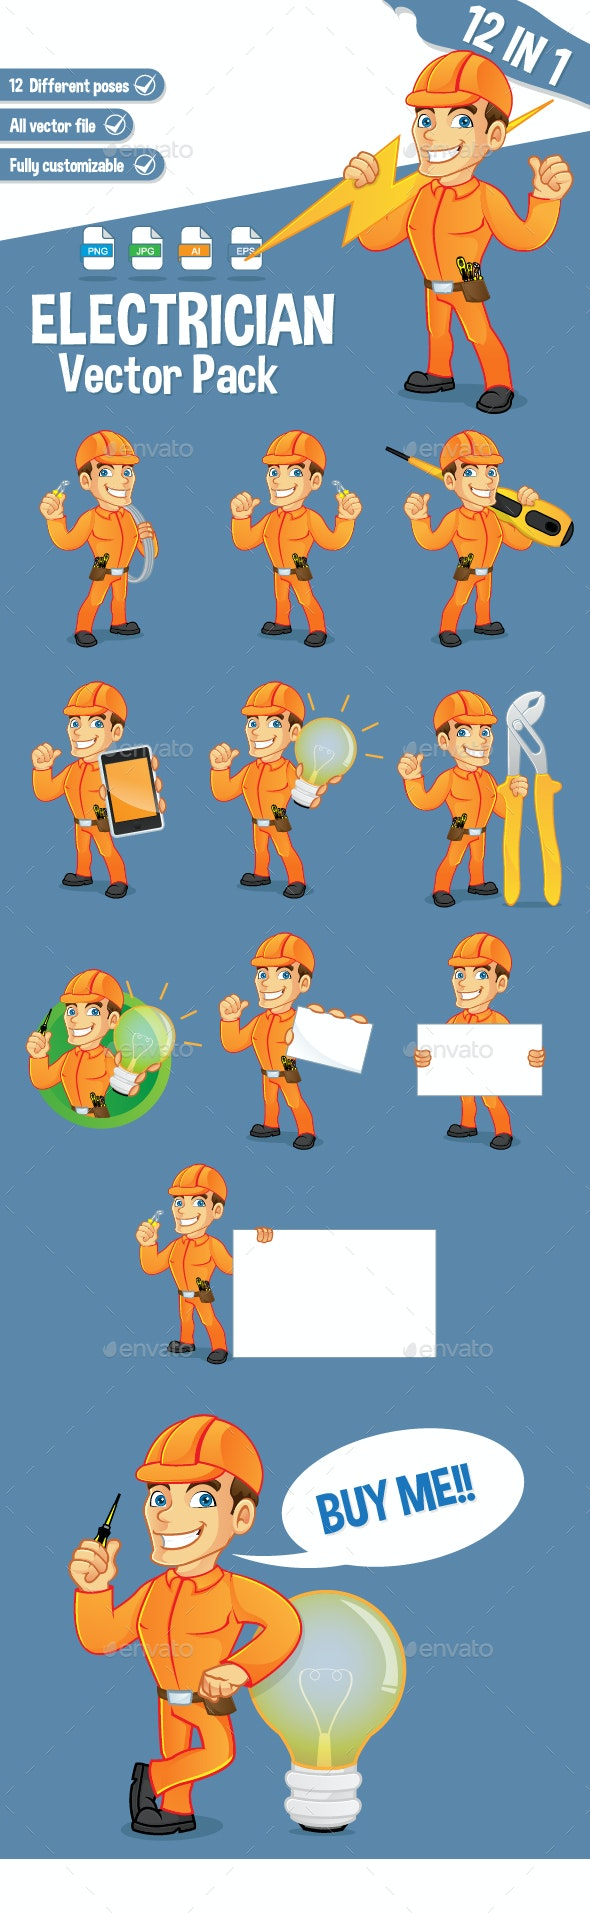 Electrician Mascot Pack - People Characters